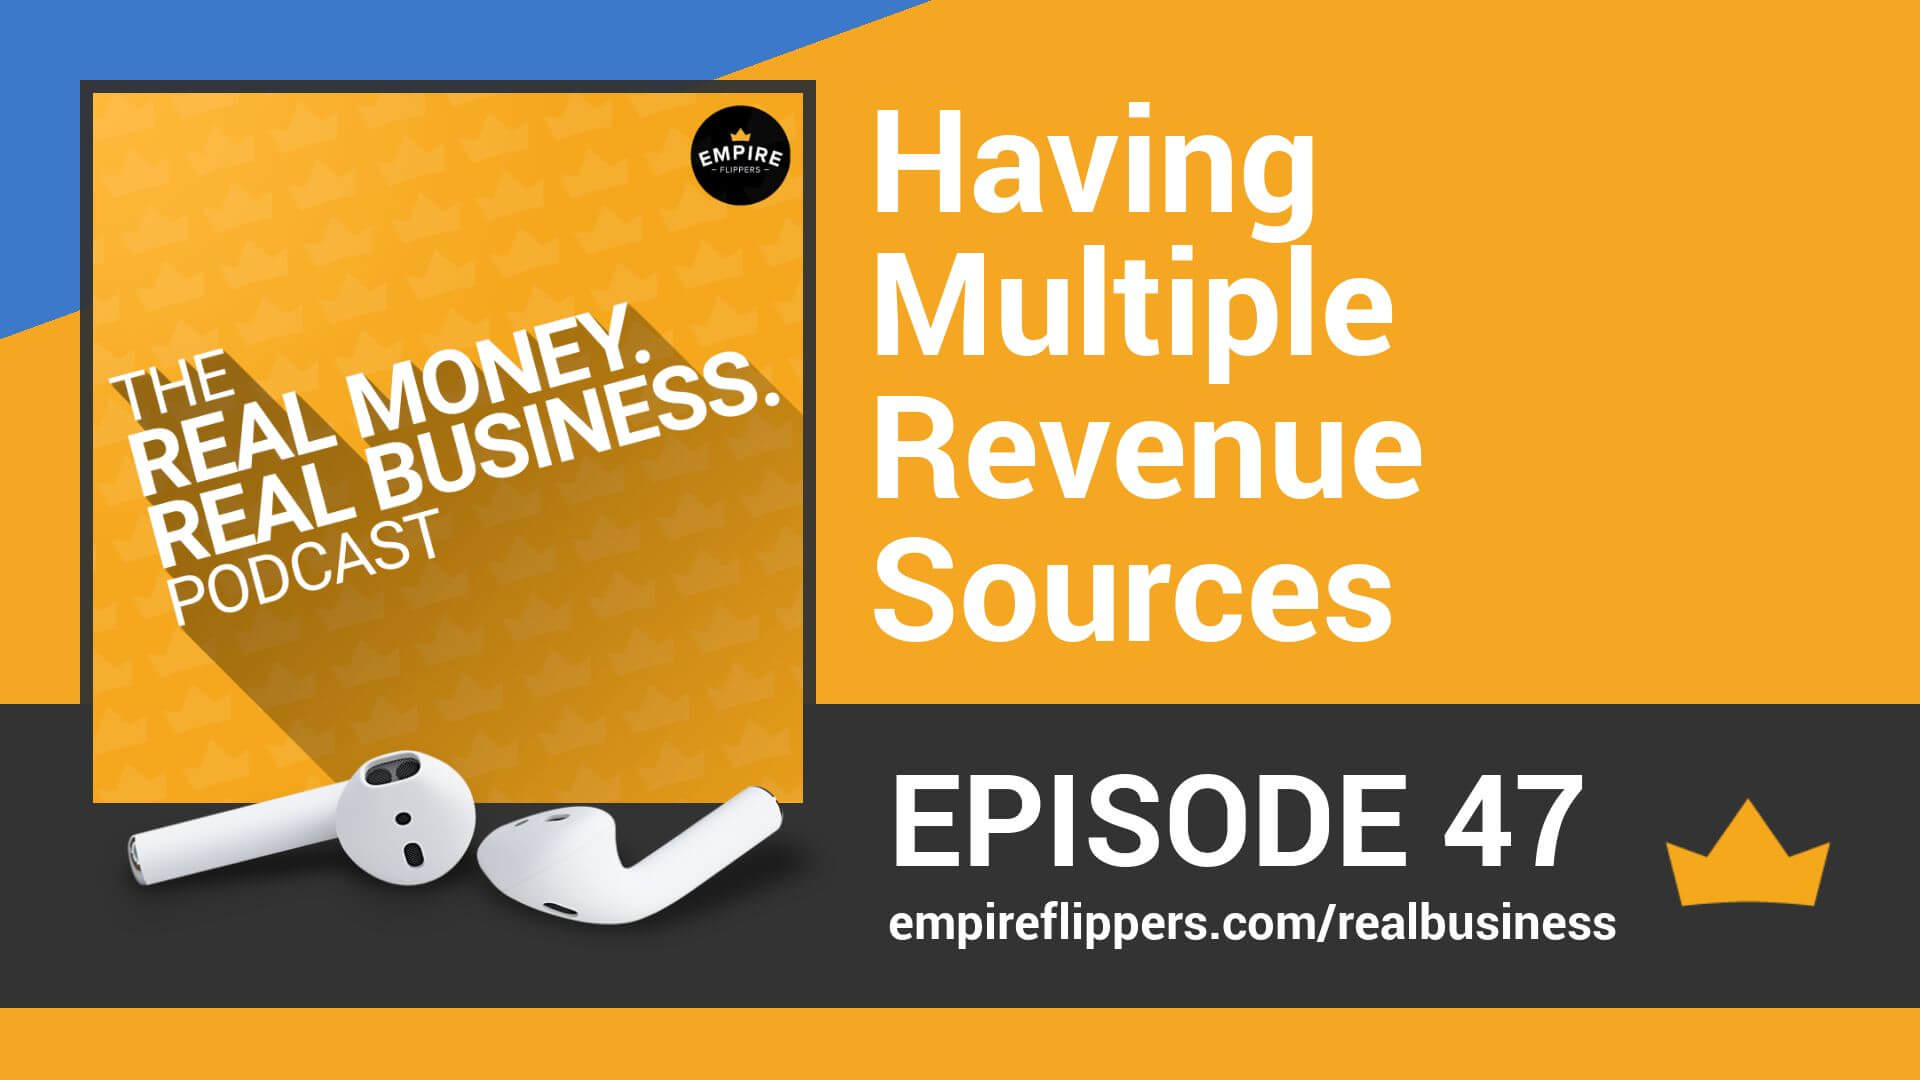 Having Multiple Revenue Sources